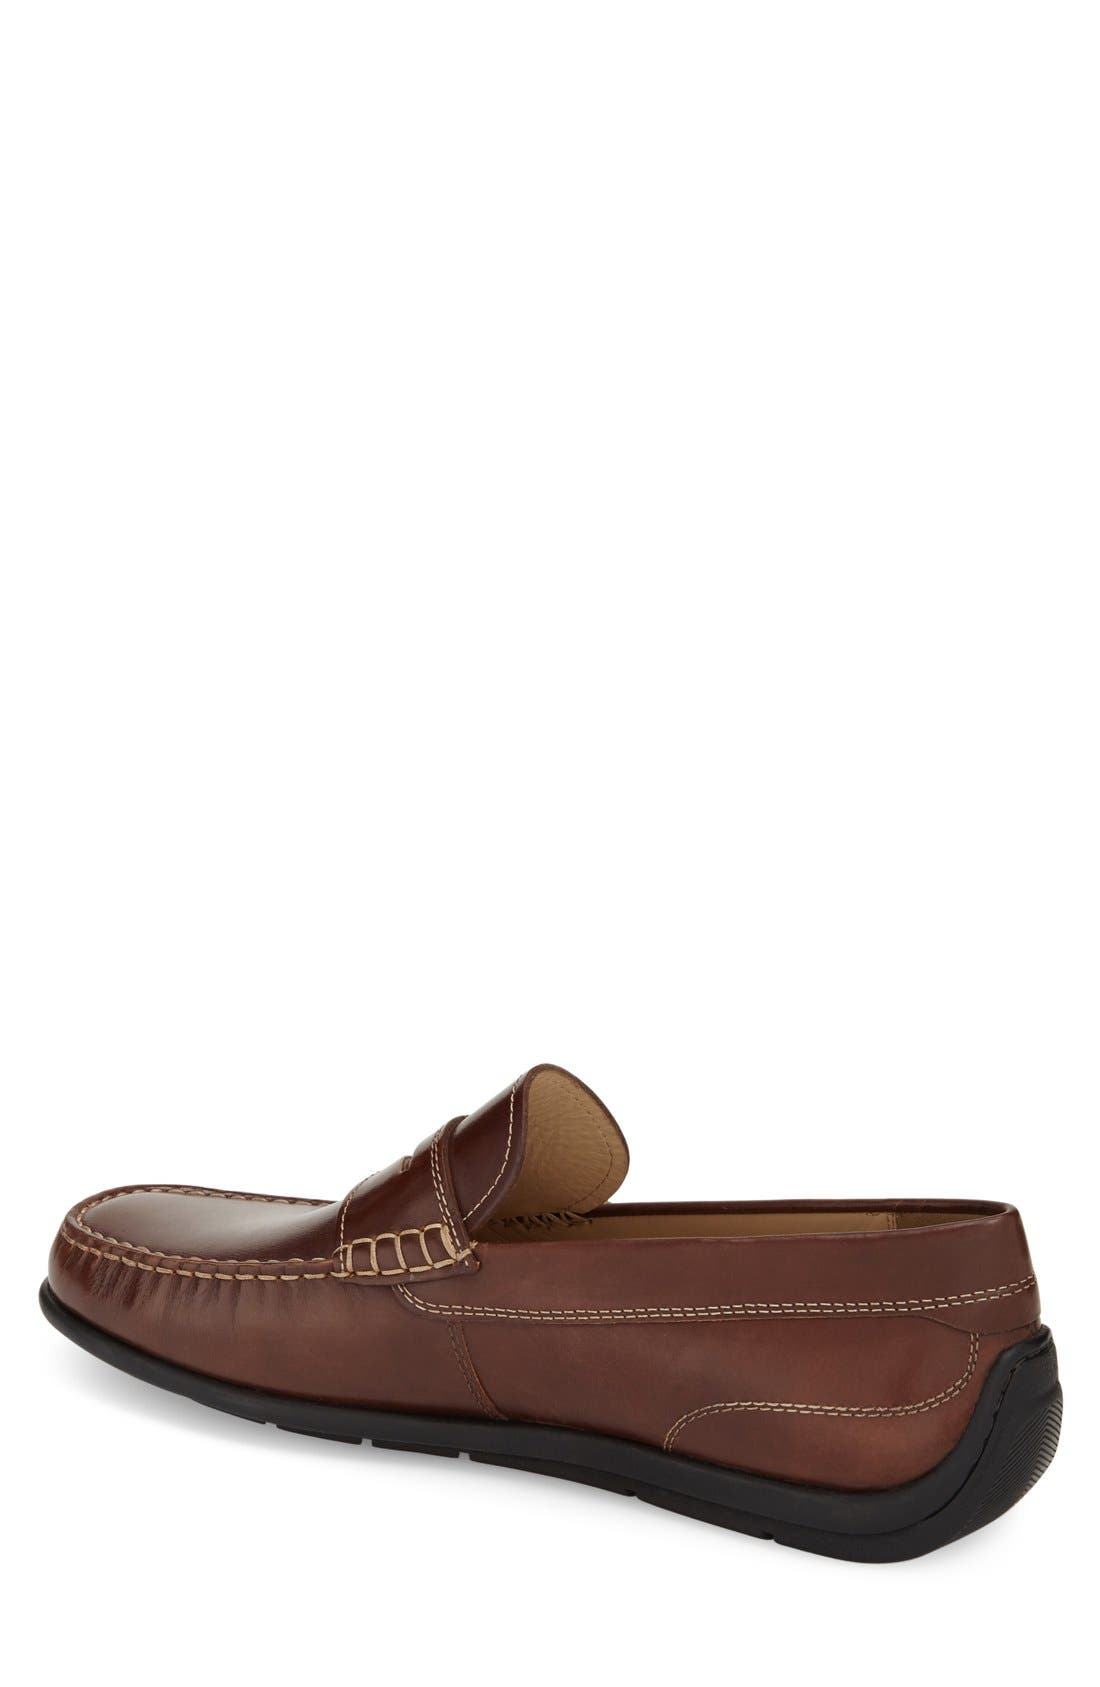 'Classic Moc 2.0' Penny Loafer,                             Alternate thumbnail 17, color,